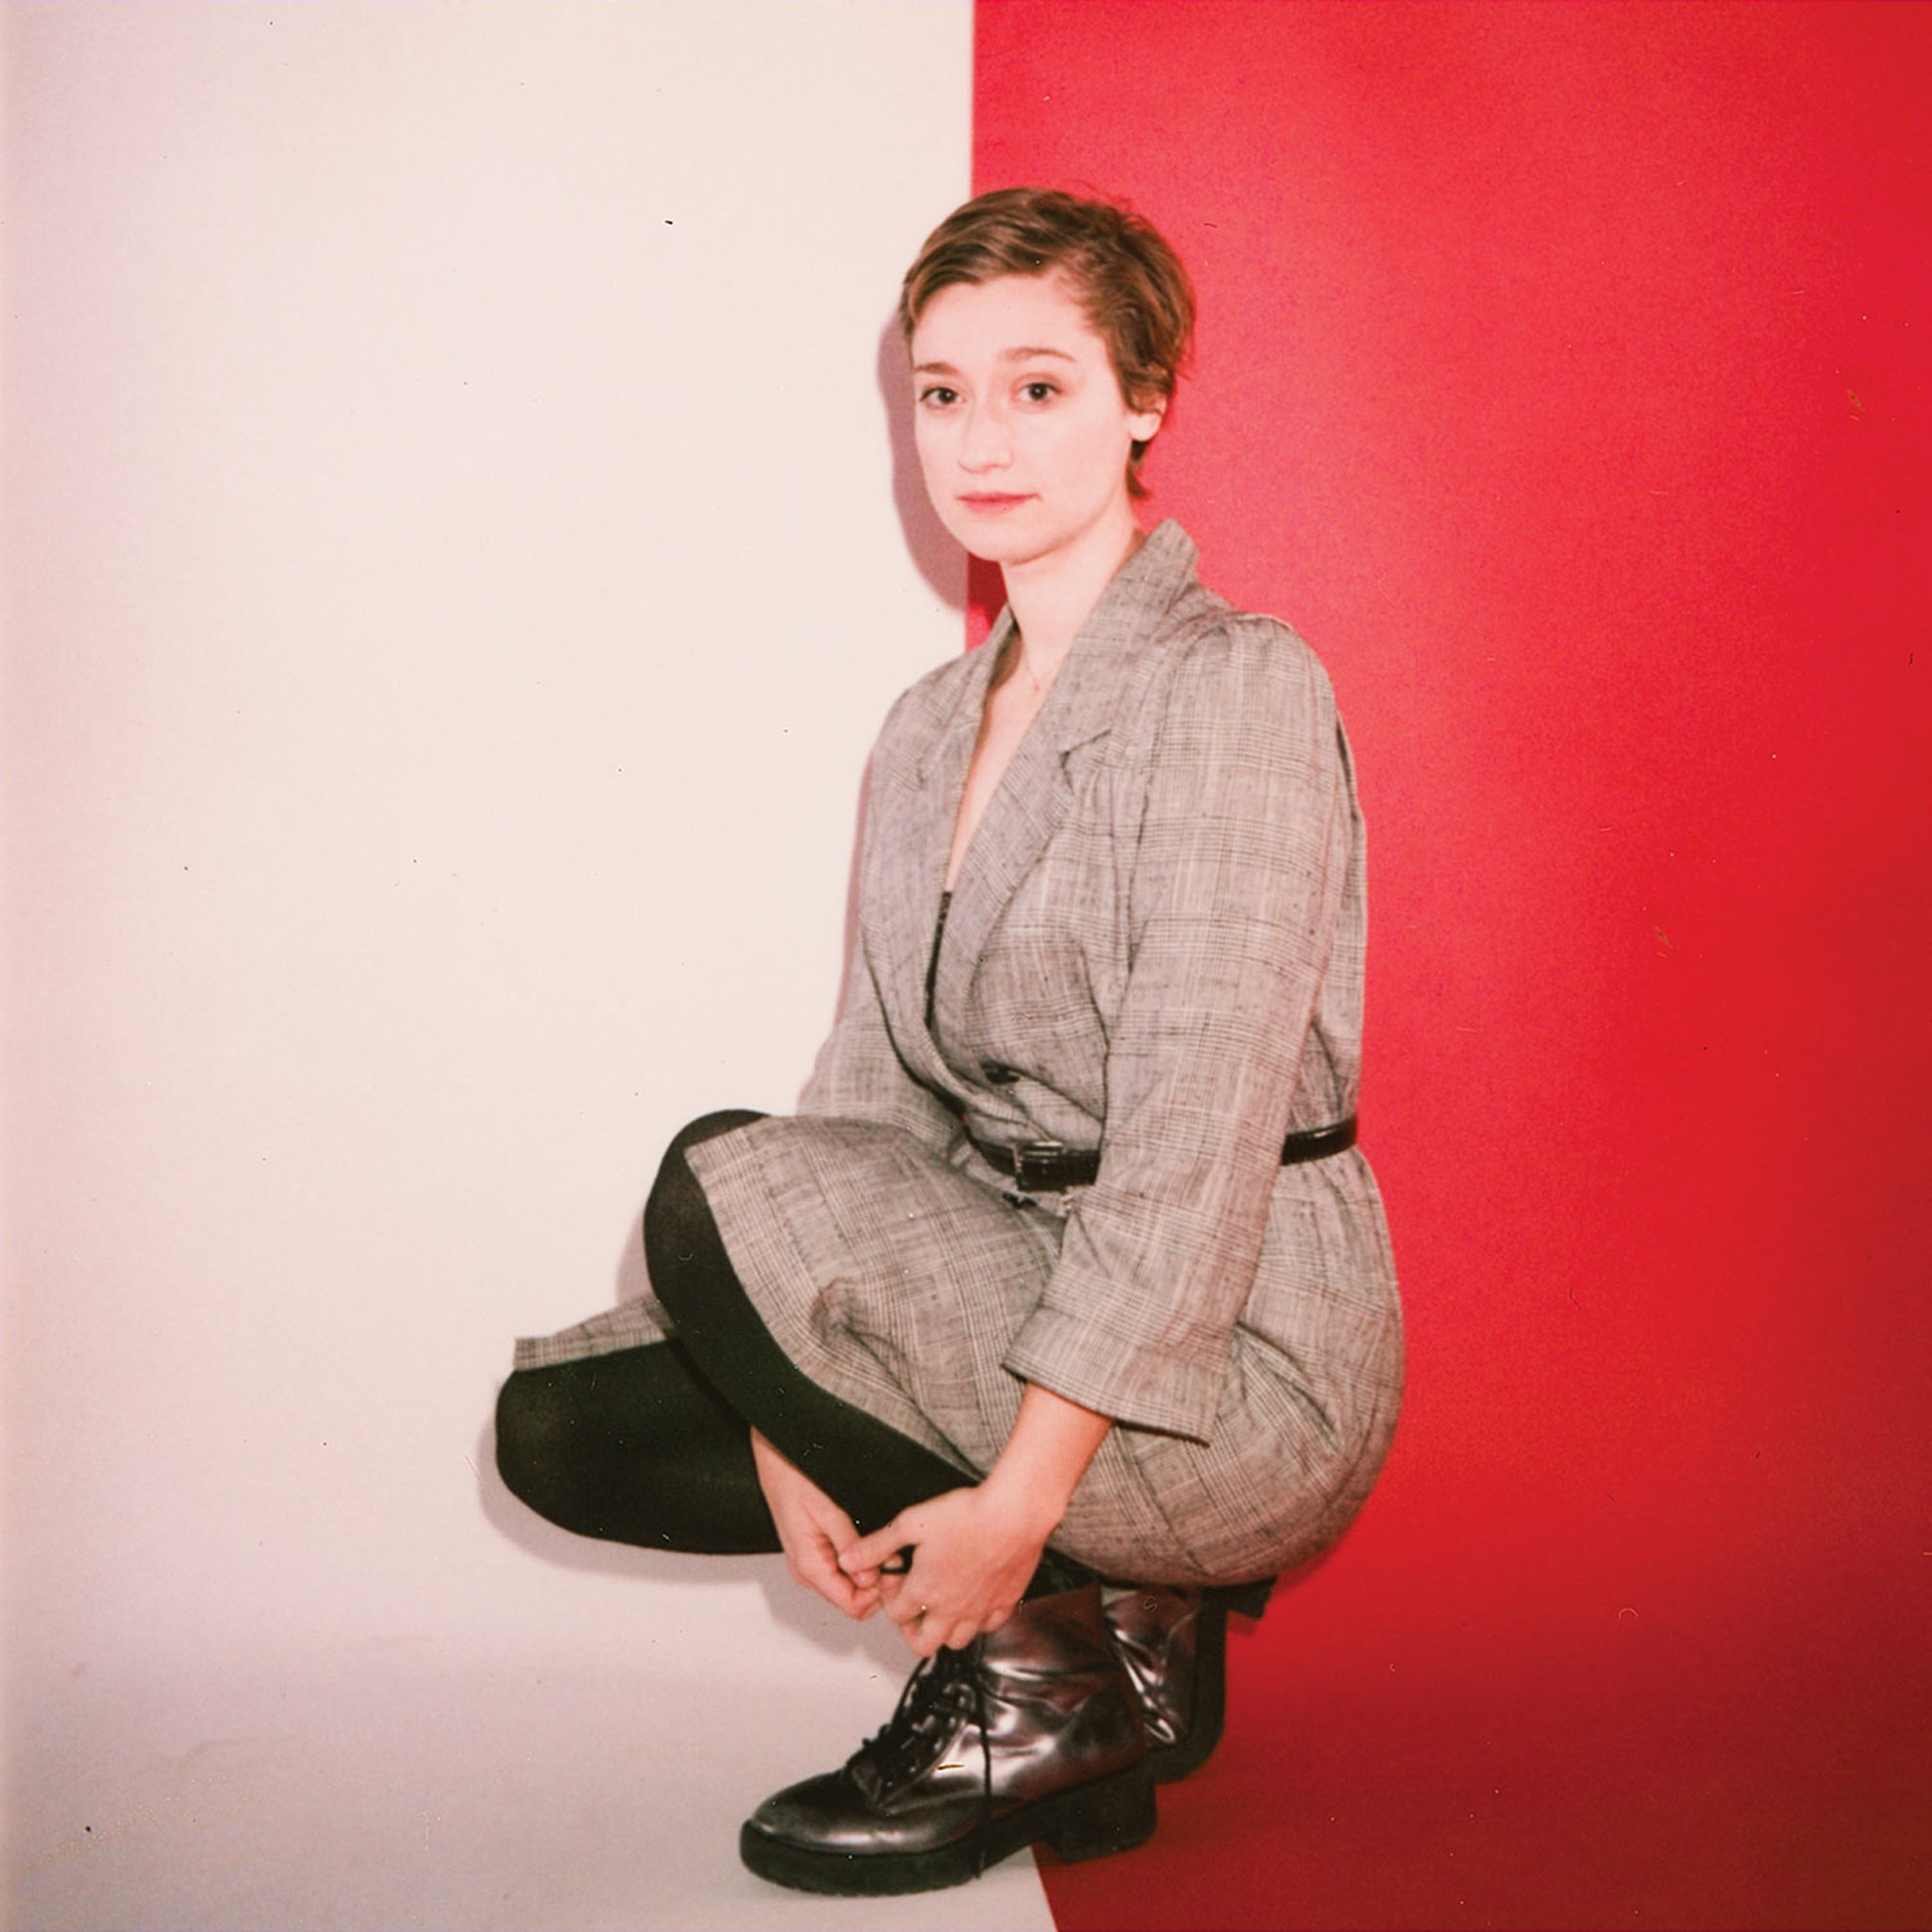 .@petal_pa's 'Magic Gone' is one of this week's Notable Releases. stream/review: https://t.co/50VqH22M24 https://t.co/RsKnPv1Okh